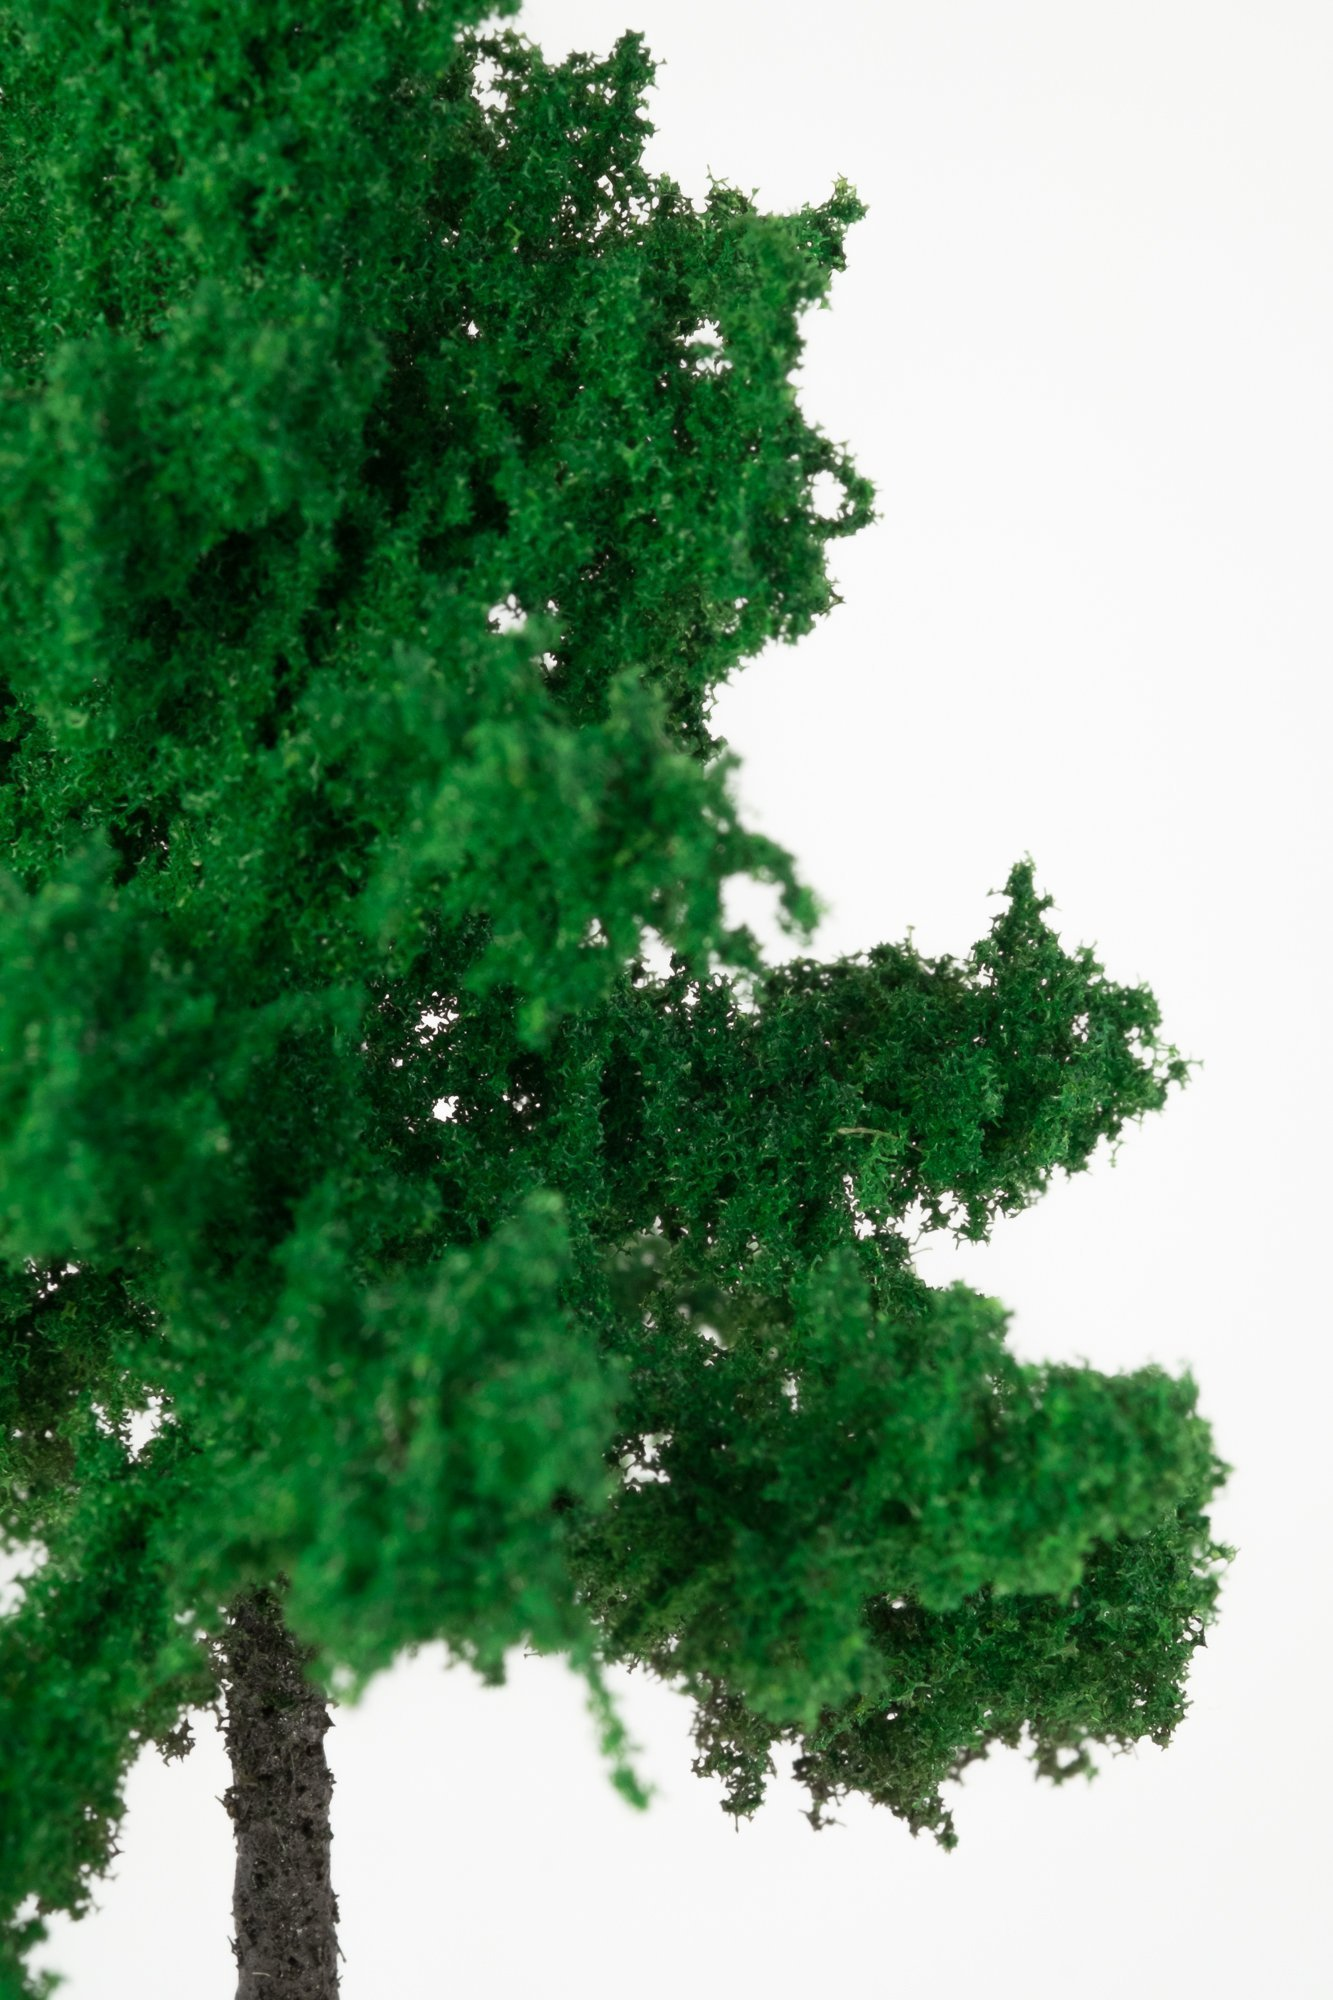 Closeup of foliage on smallest forest spruce tree model. Made from high quality model supplies by Primo Models.